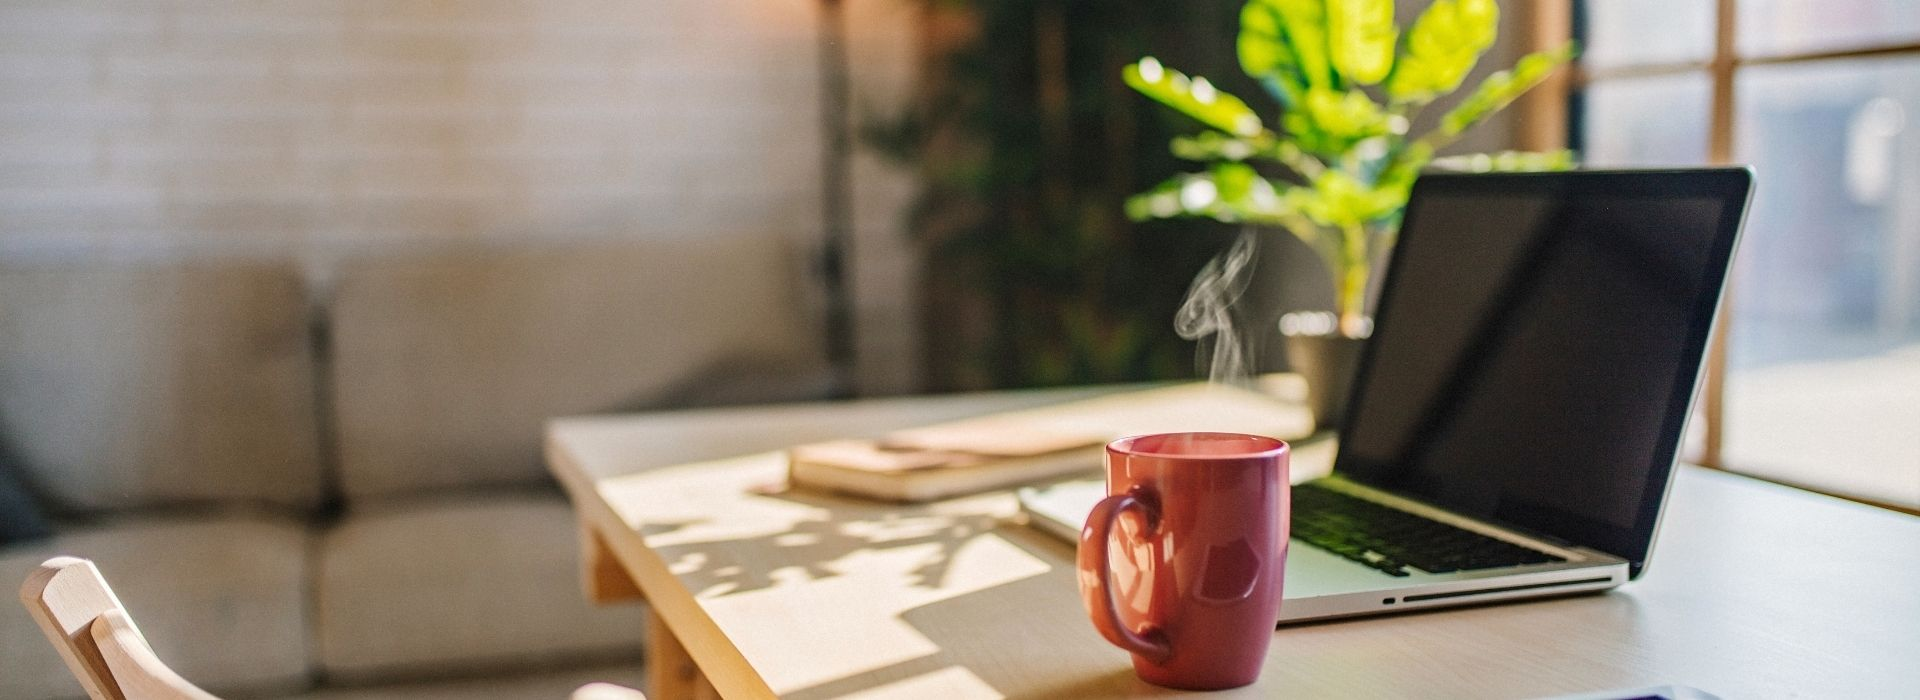 Working From Home Expenses and Covid19